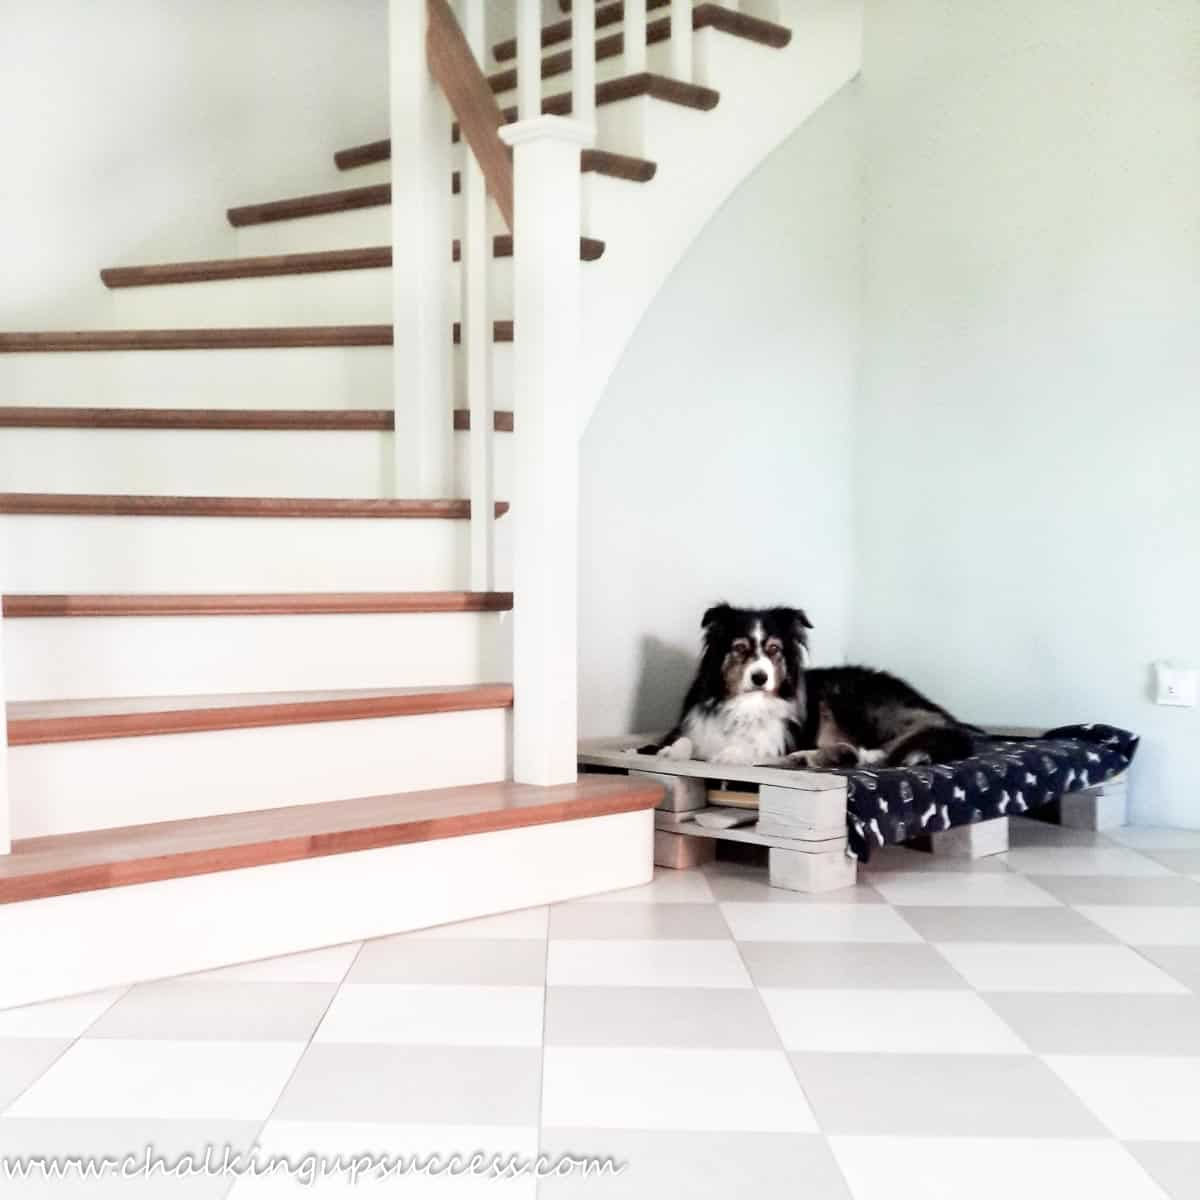 Before the hallway refresh. A photo of our black and tan, Australian Shepherd 'Brilli' laying on her pallet bed at the bottom of the stairs.